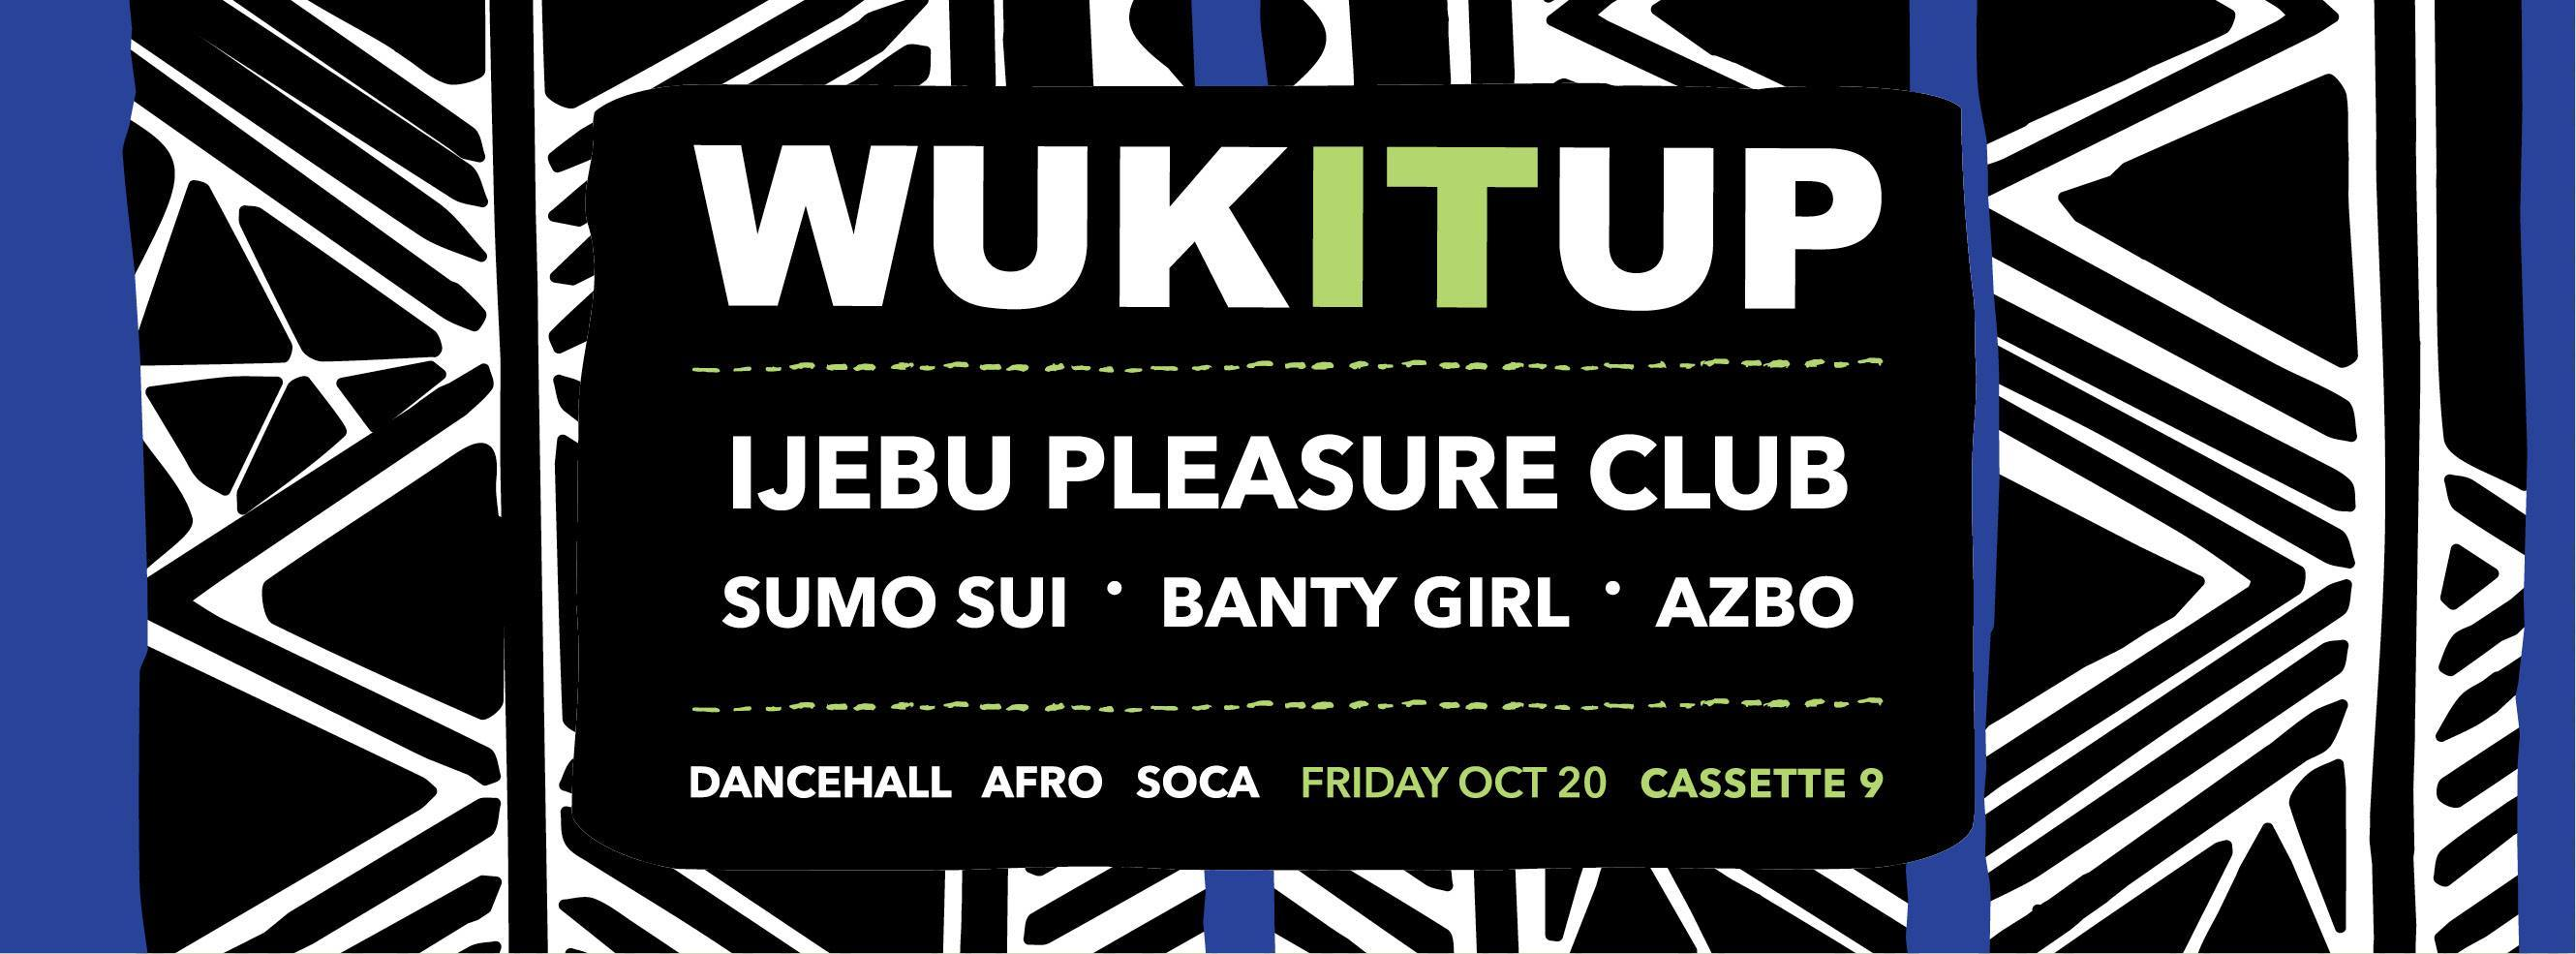 The Ijebu Pleasure Club